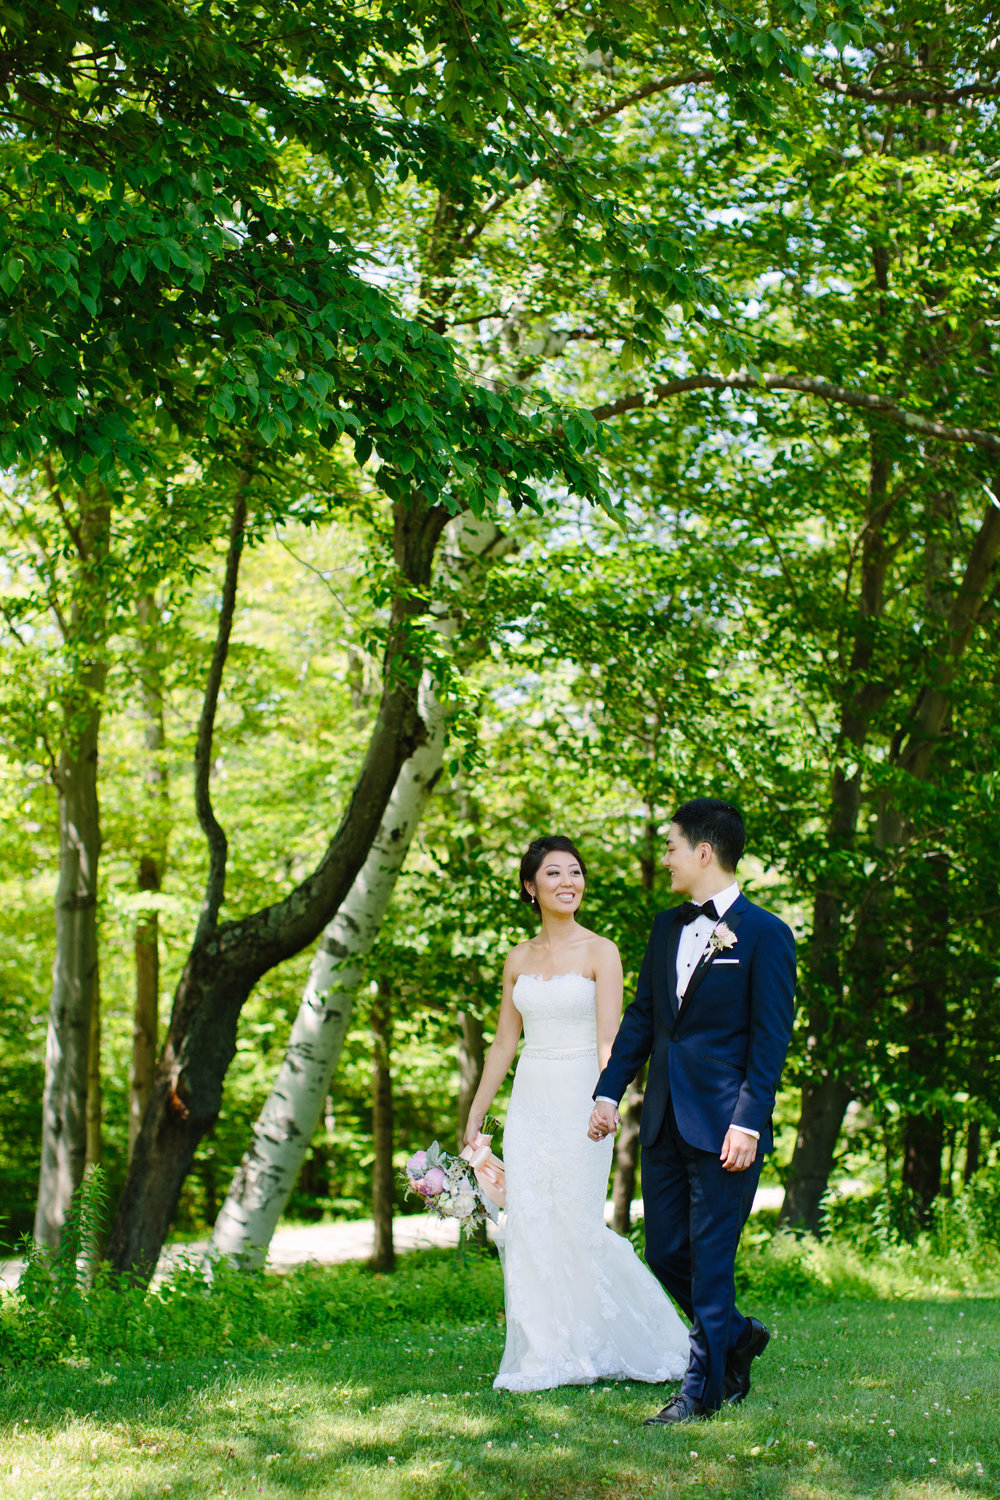 hildene_wedding_34.jpg